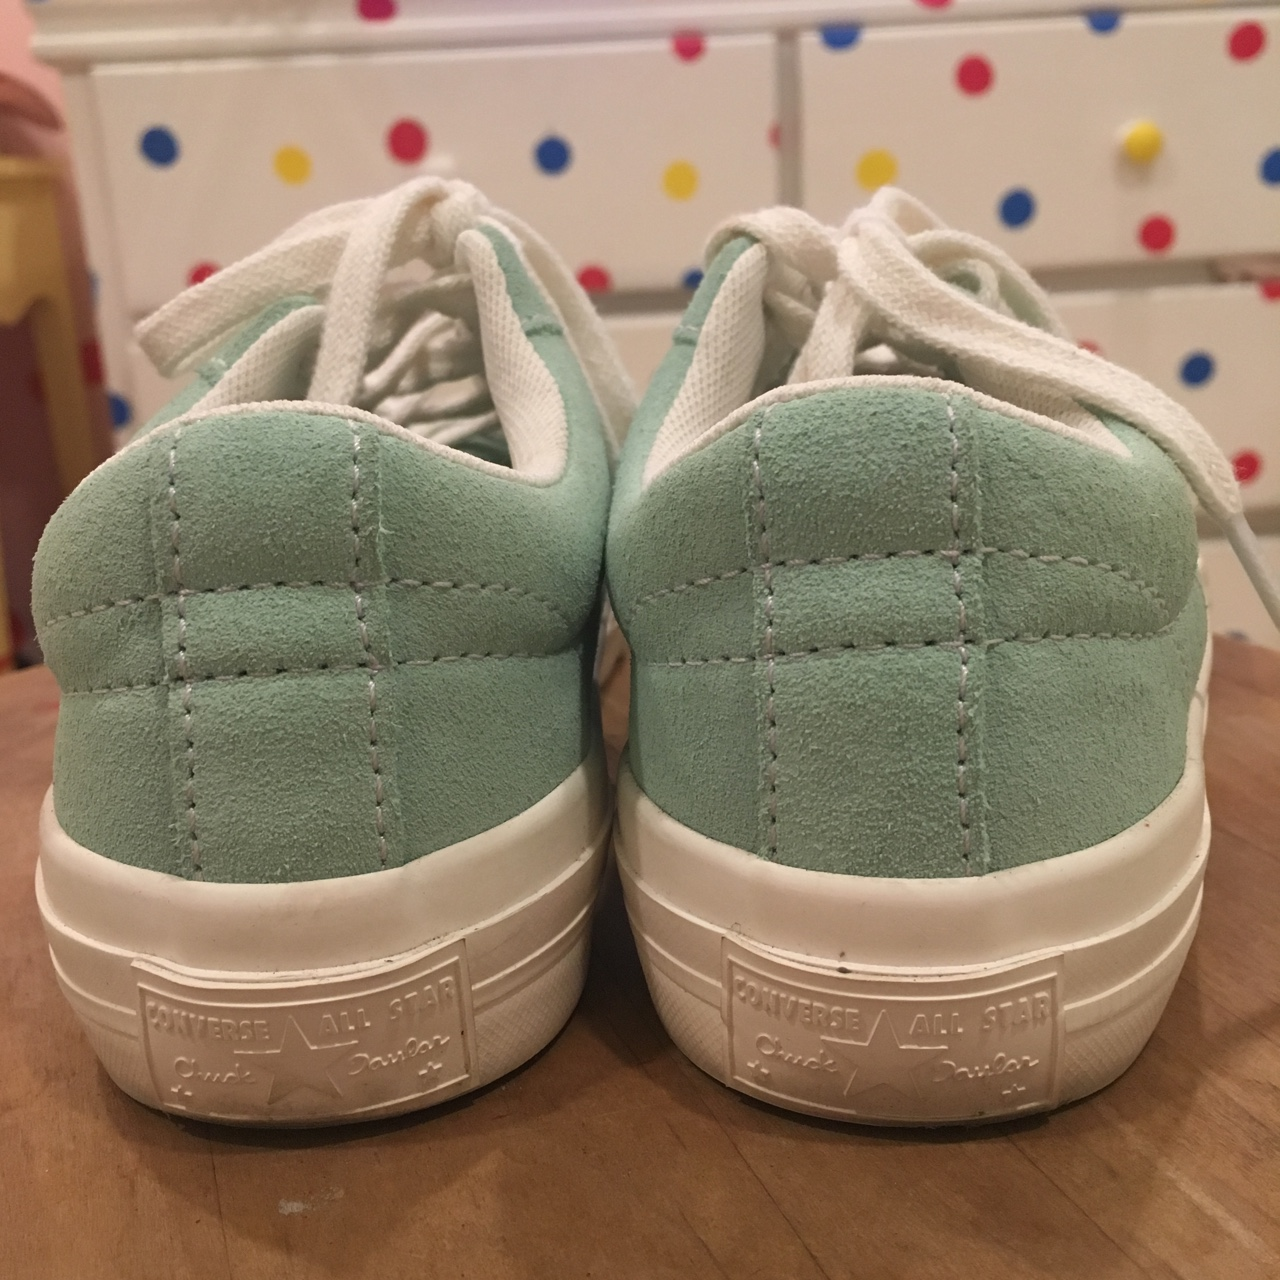 Converse One Star size 2.5 I wear a size 5 5.5 and Depop